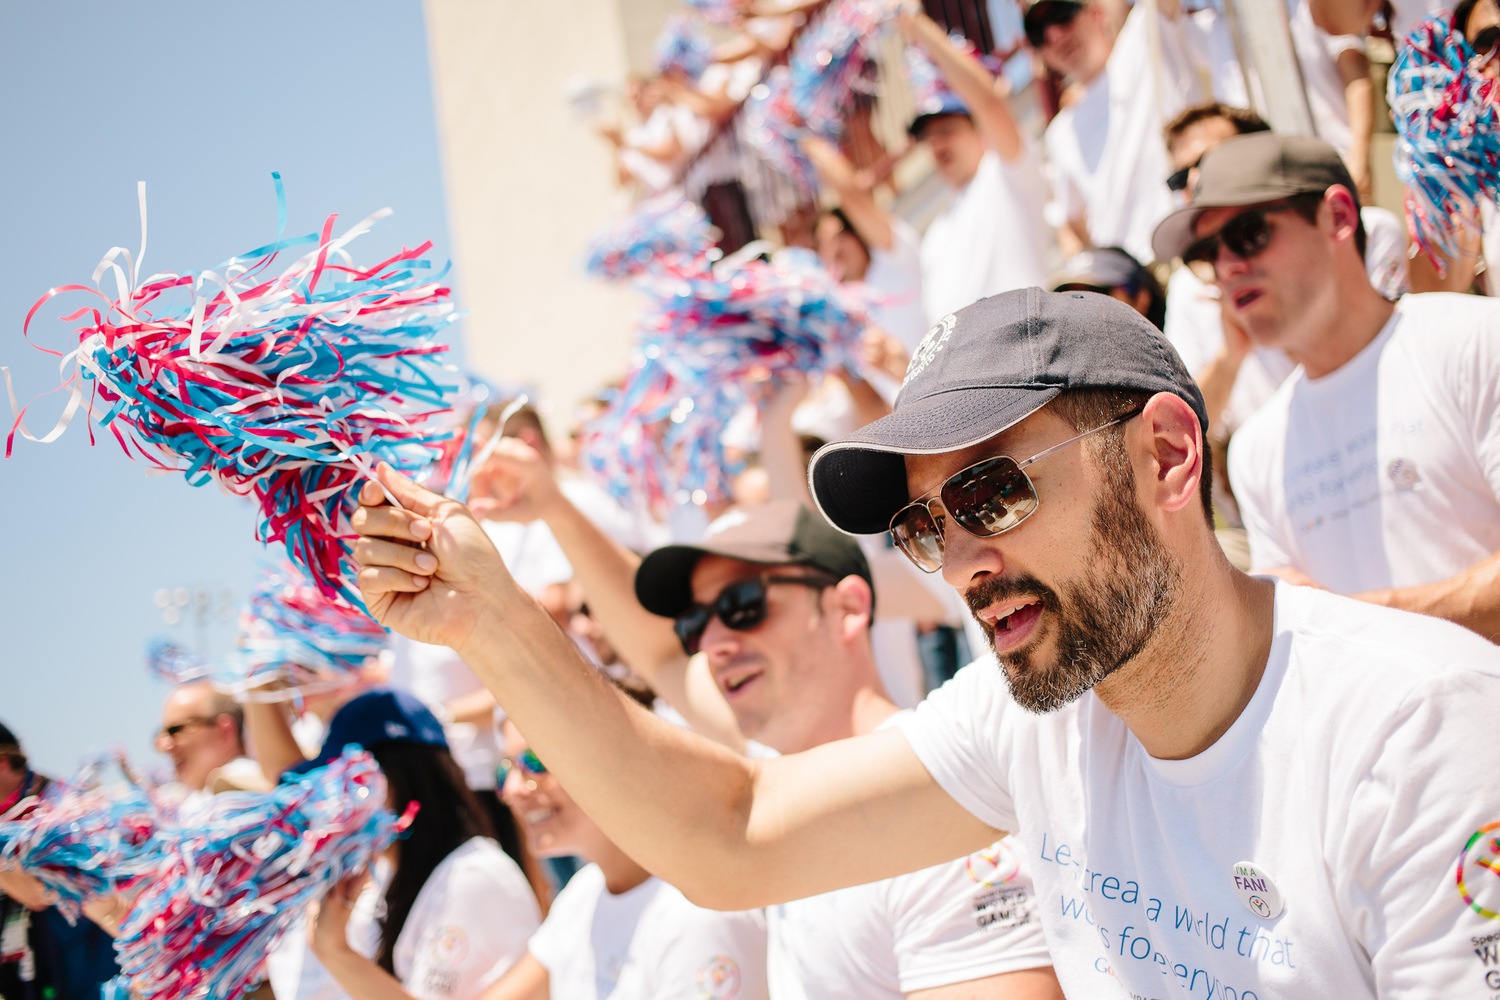 Google was a sponsor of the 2015 Special Olympics World Games in LA. At the Google.org tent, Games attendees explored assistive technology, including 3-D printed prosthetic hands and tremor-canceling silverware. Googlers also took to the stands en masse to cheer on track and field athletes.